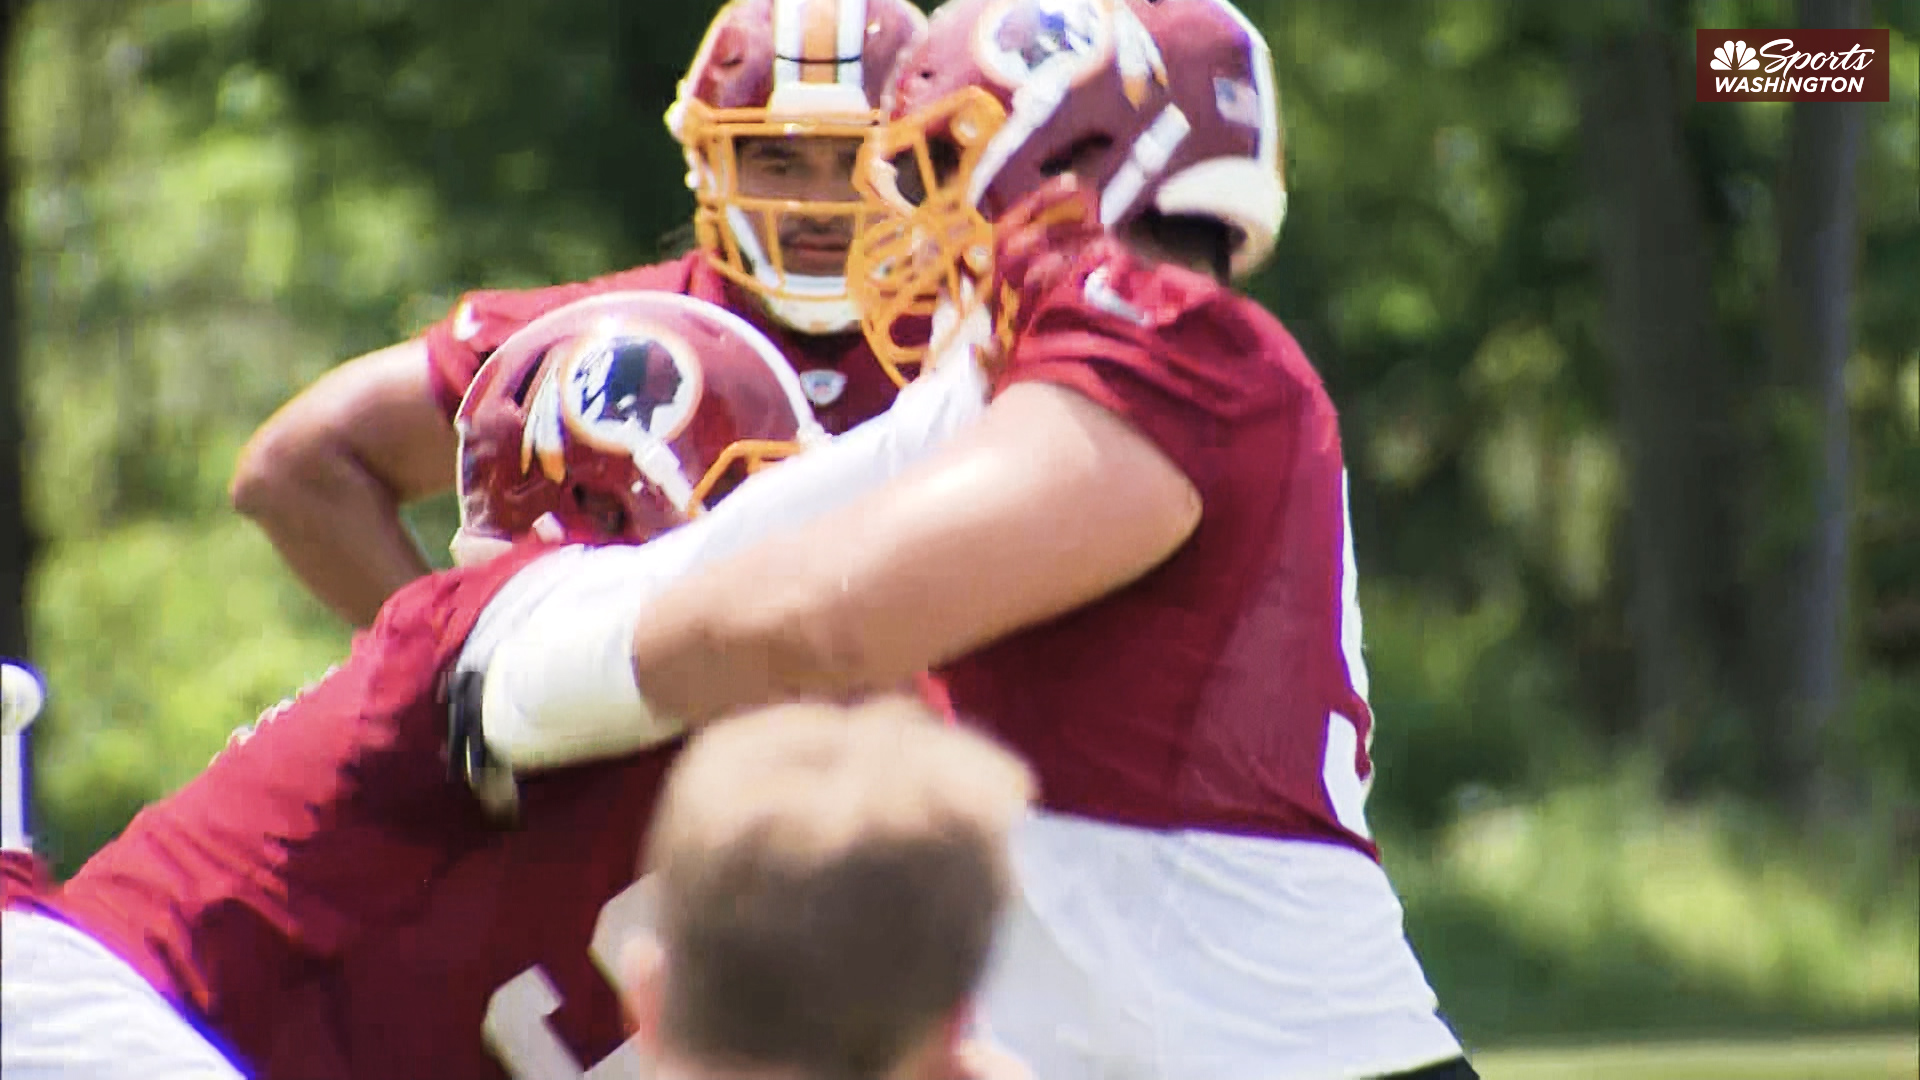 Stock up, stock down: Norman, Moses and Scherff are all struggling